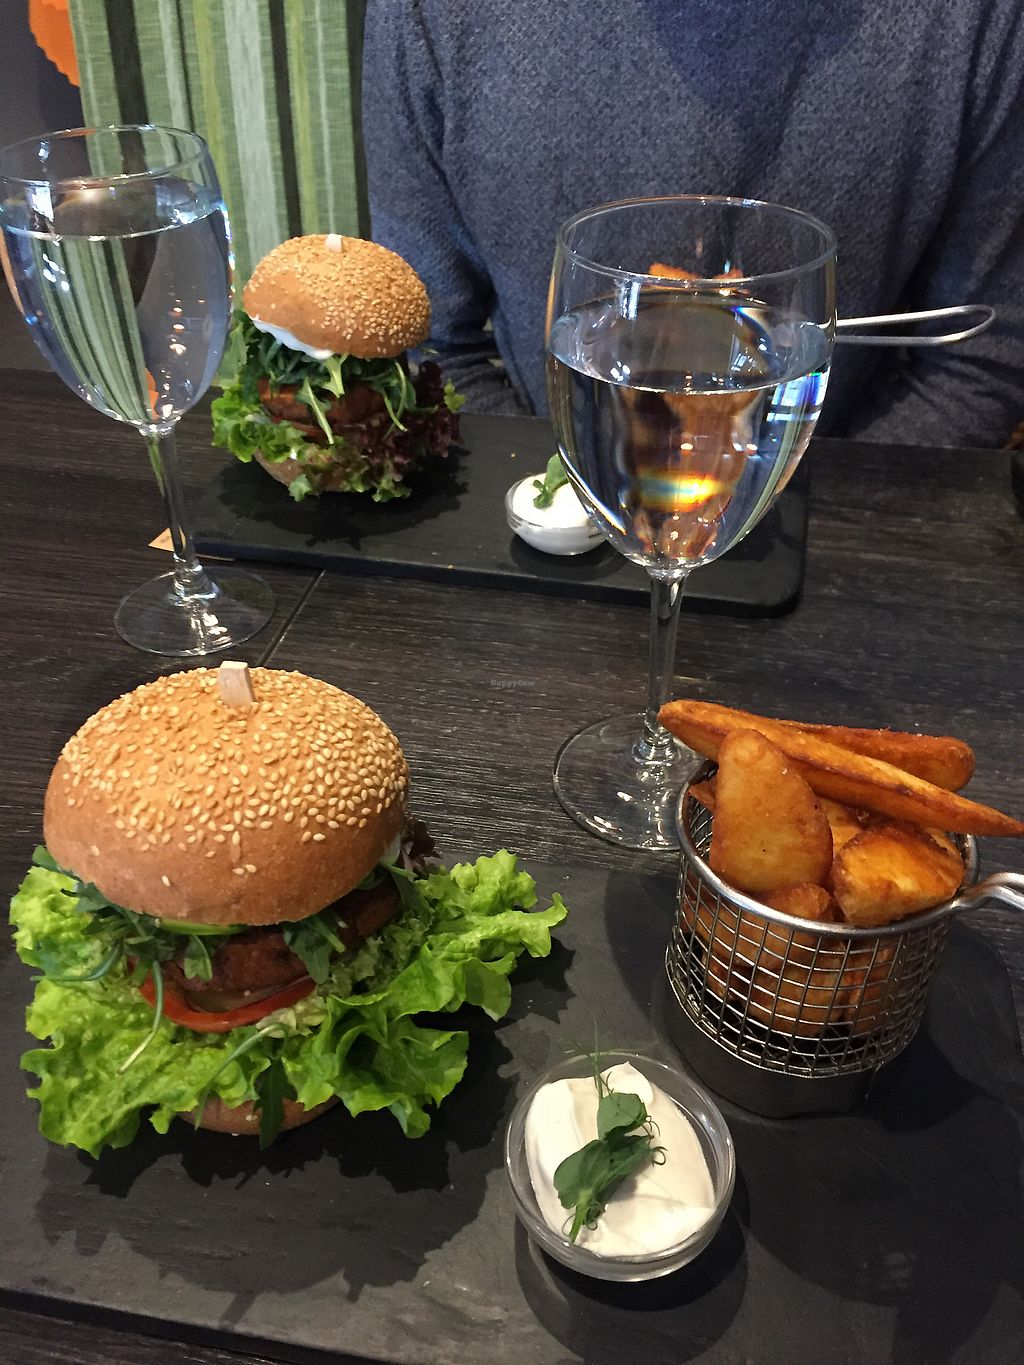 """Photo of Fat Pumpkin  by <a href=""""/members/profile/AliseKrasovska"""">AliseKrasovska</a> <br/>Amazing burgers! <br/> April 5, 2018  - <a href='/contact/abuse/image/53101/381047'>Report</a>"""